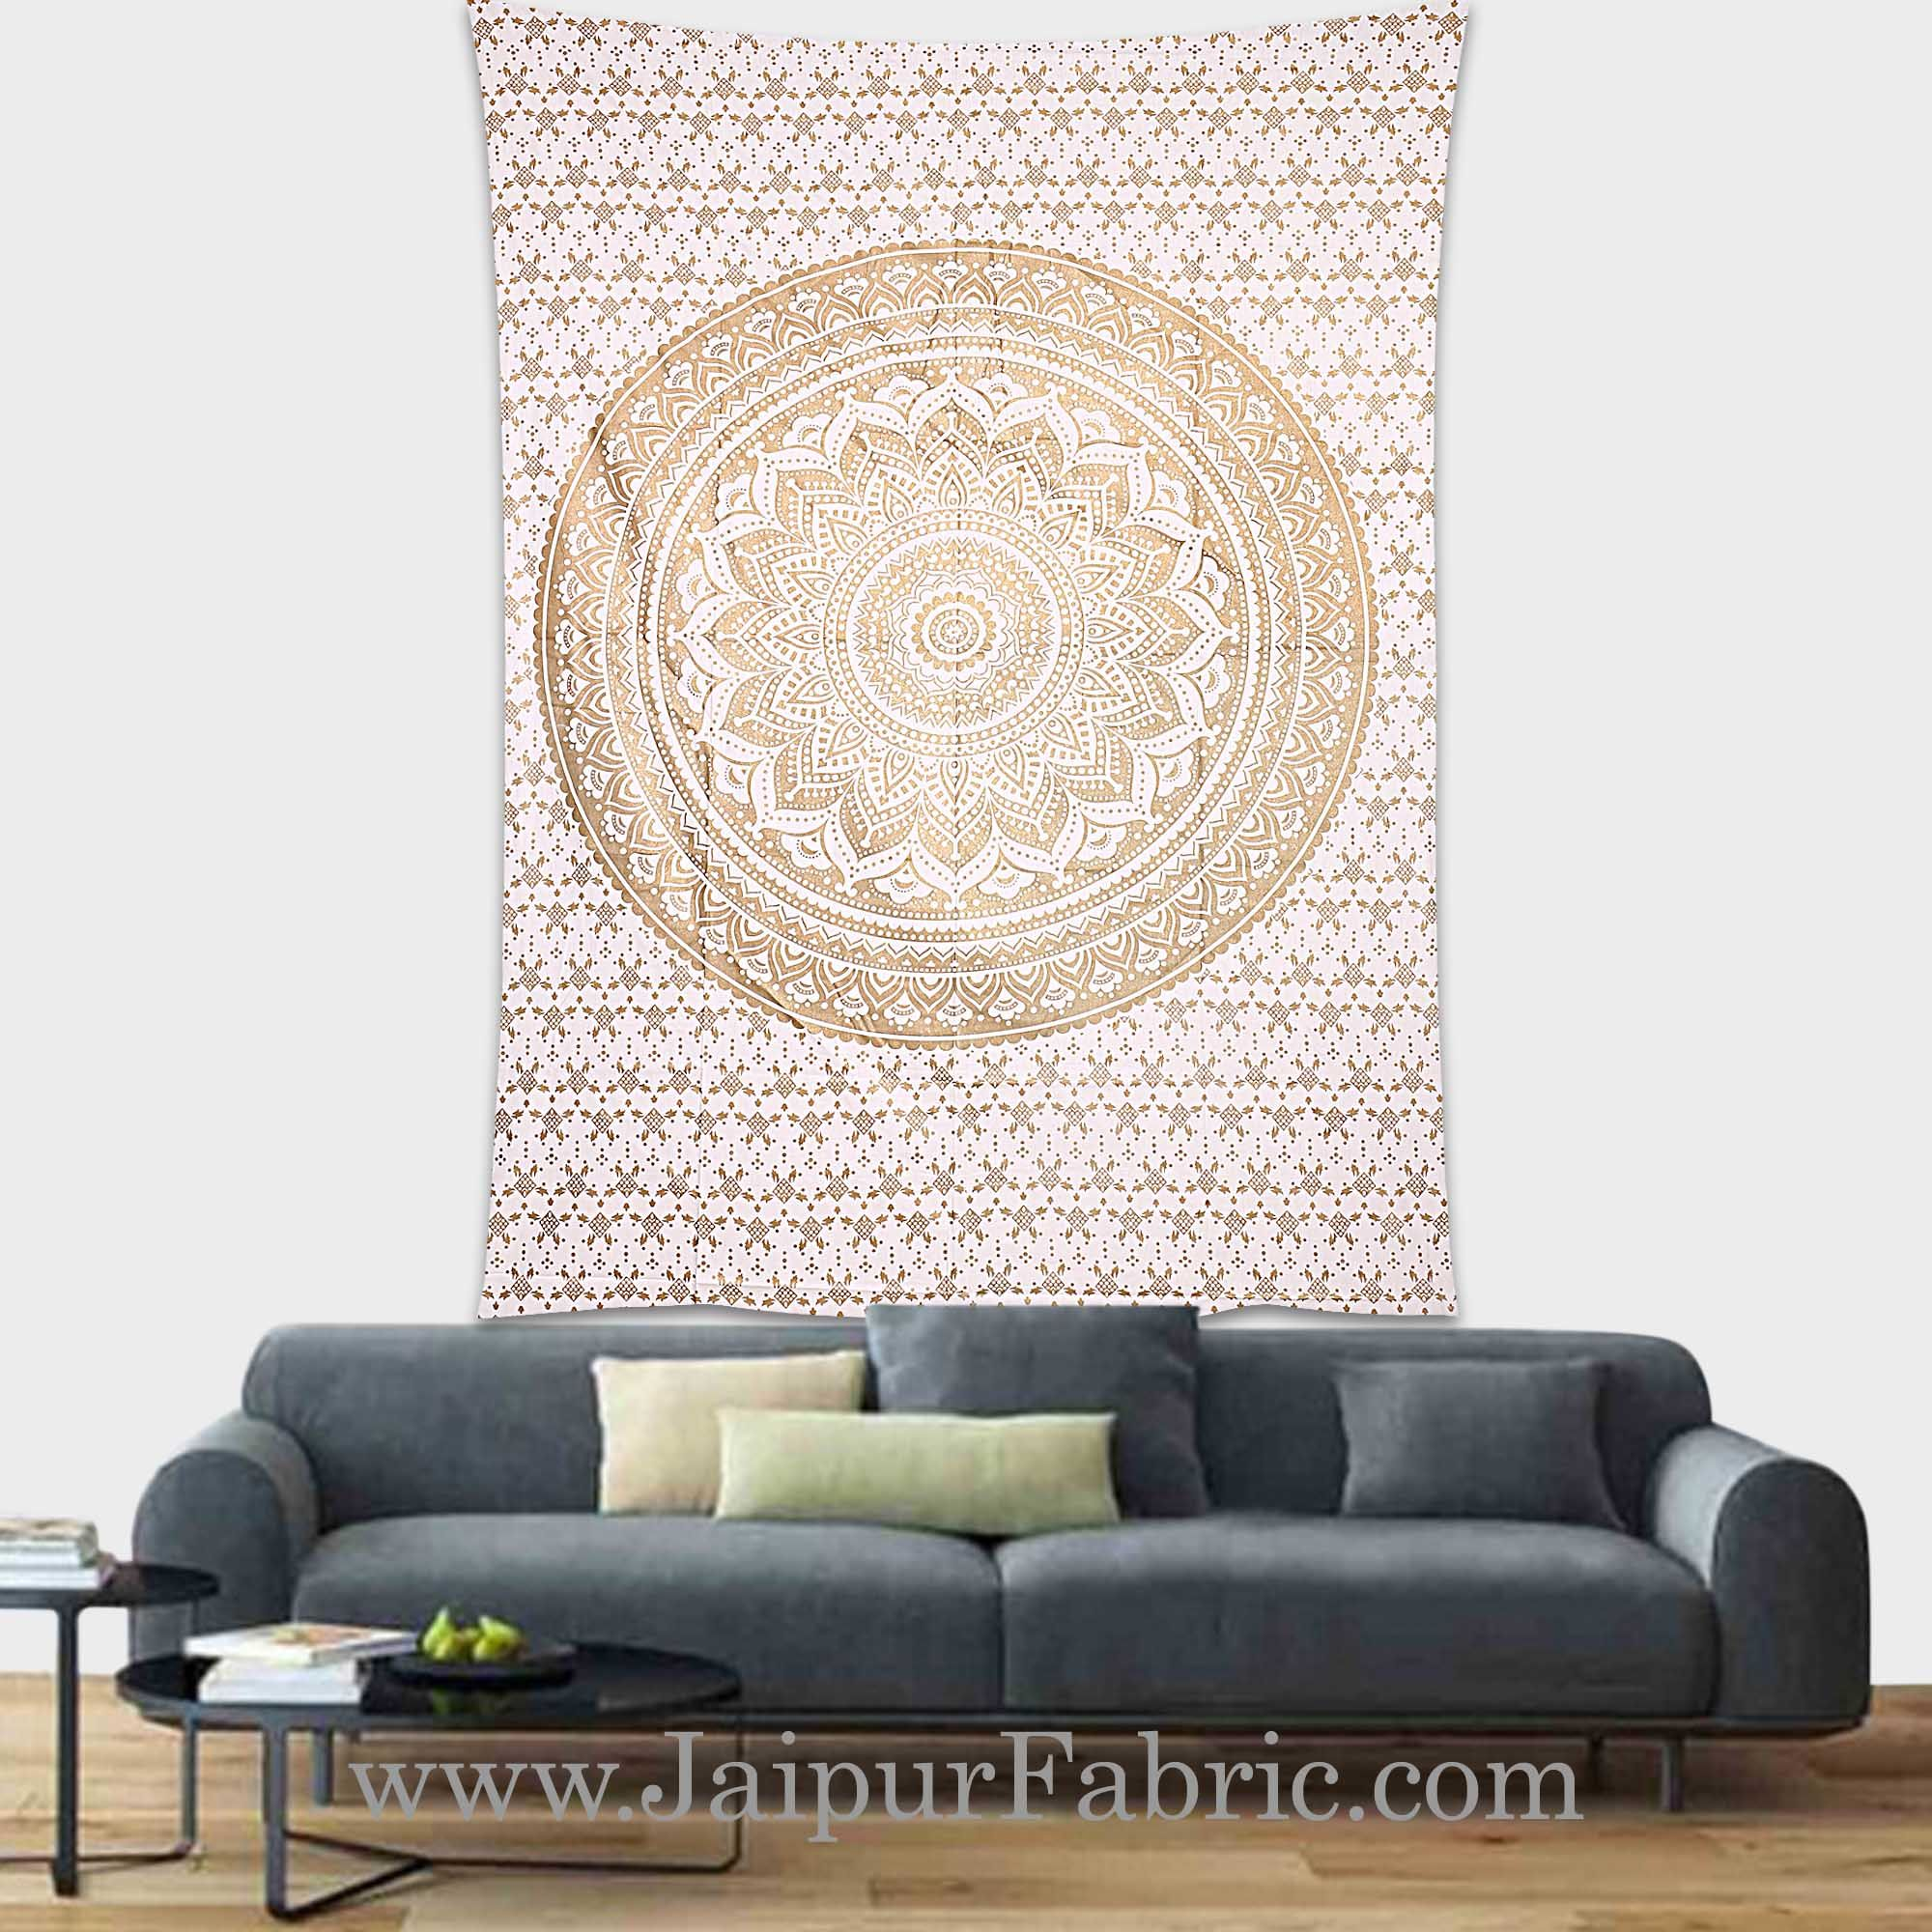 Gold Tapestry Ombre Mandala Wall Hanging Metallic Shine Bohemian Bedspread and beach throw 90x60